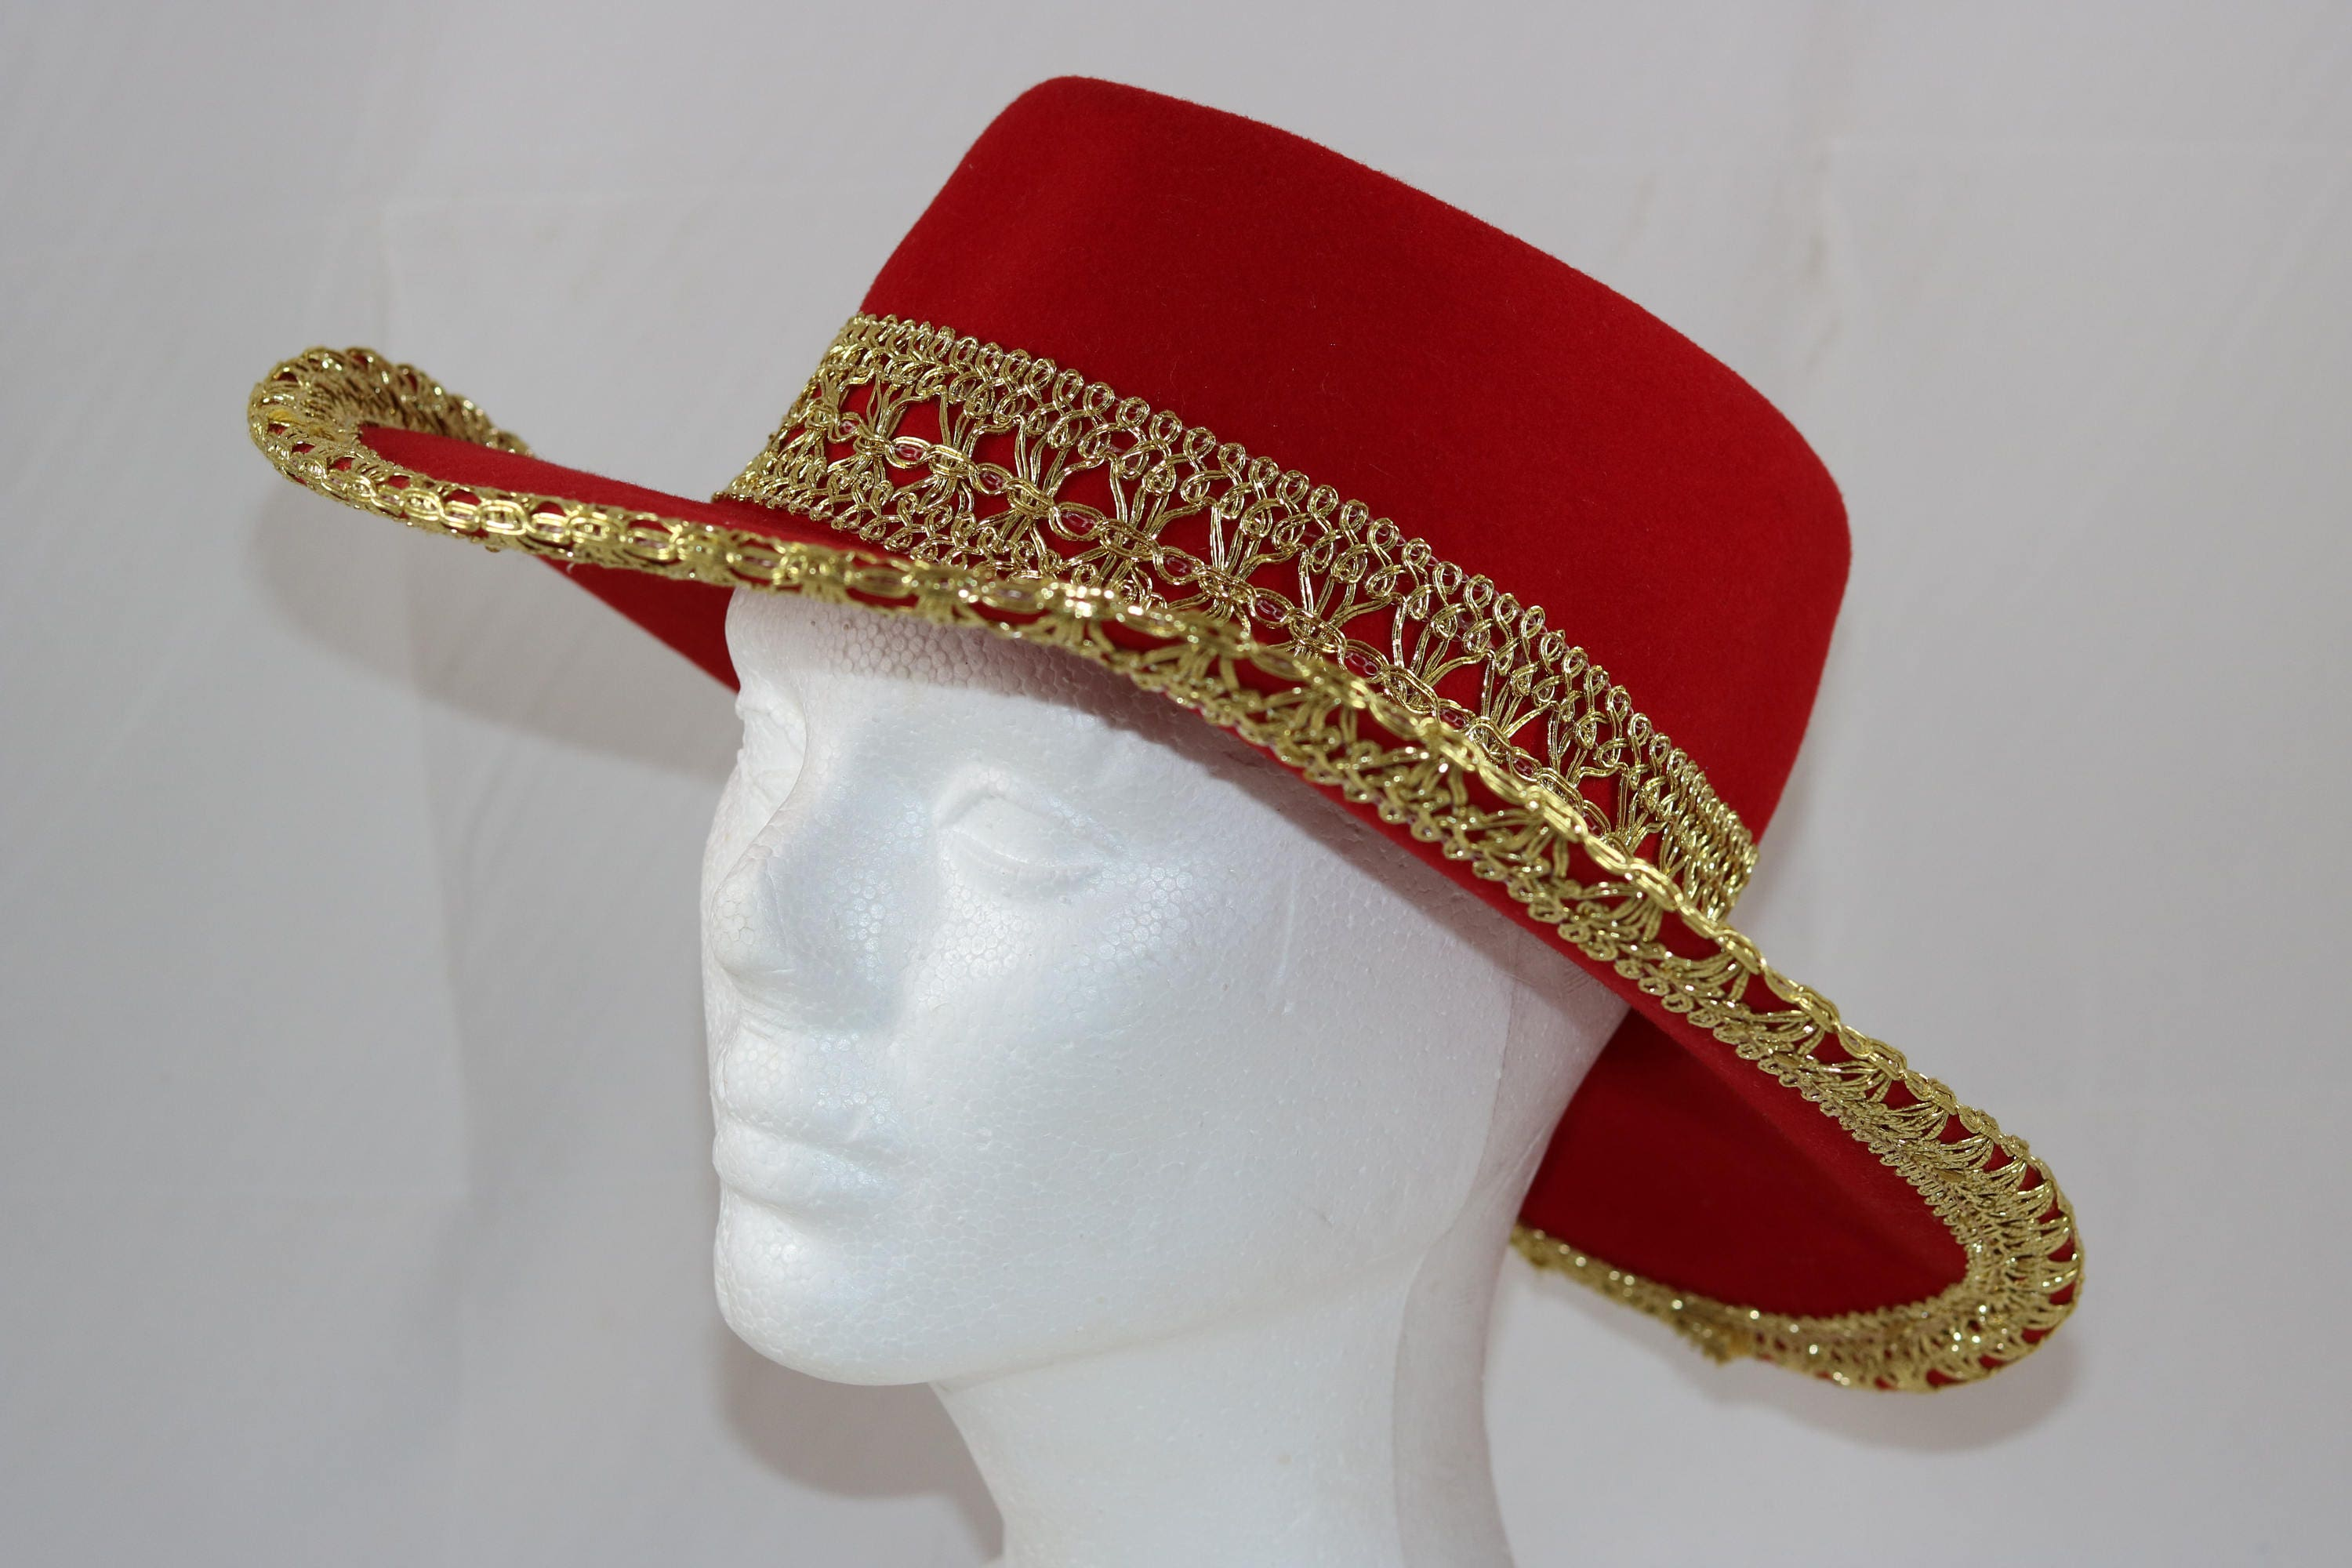 Vintage Red Gold Wool Felt Western Cowgirl Hat Size Small 21.5  771dba1a5b1